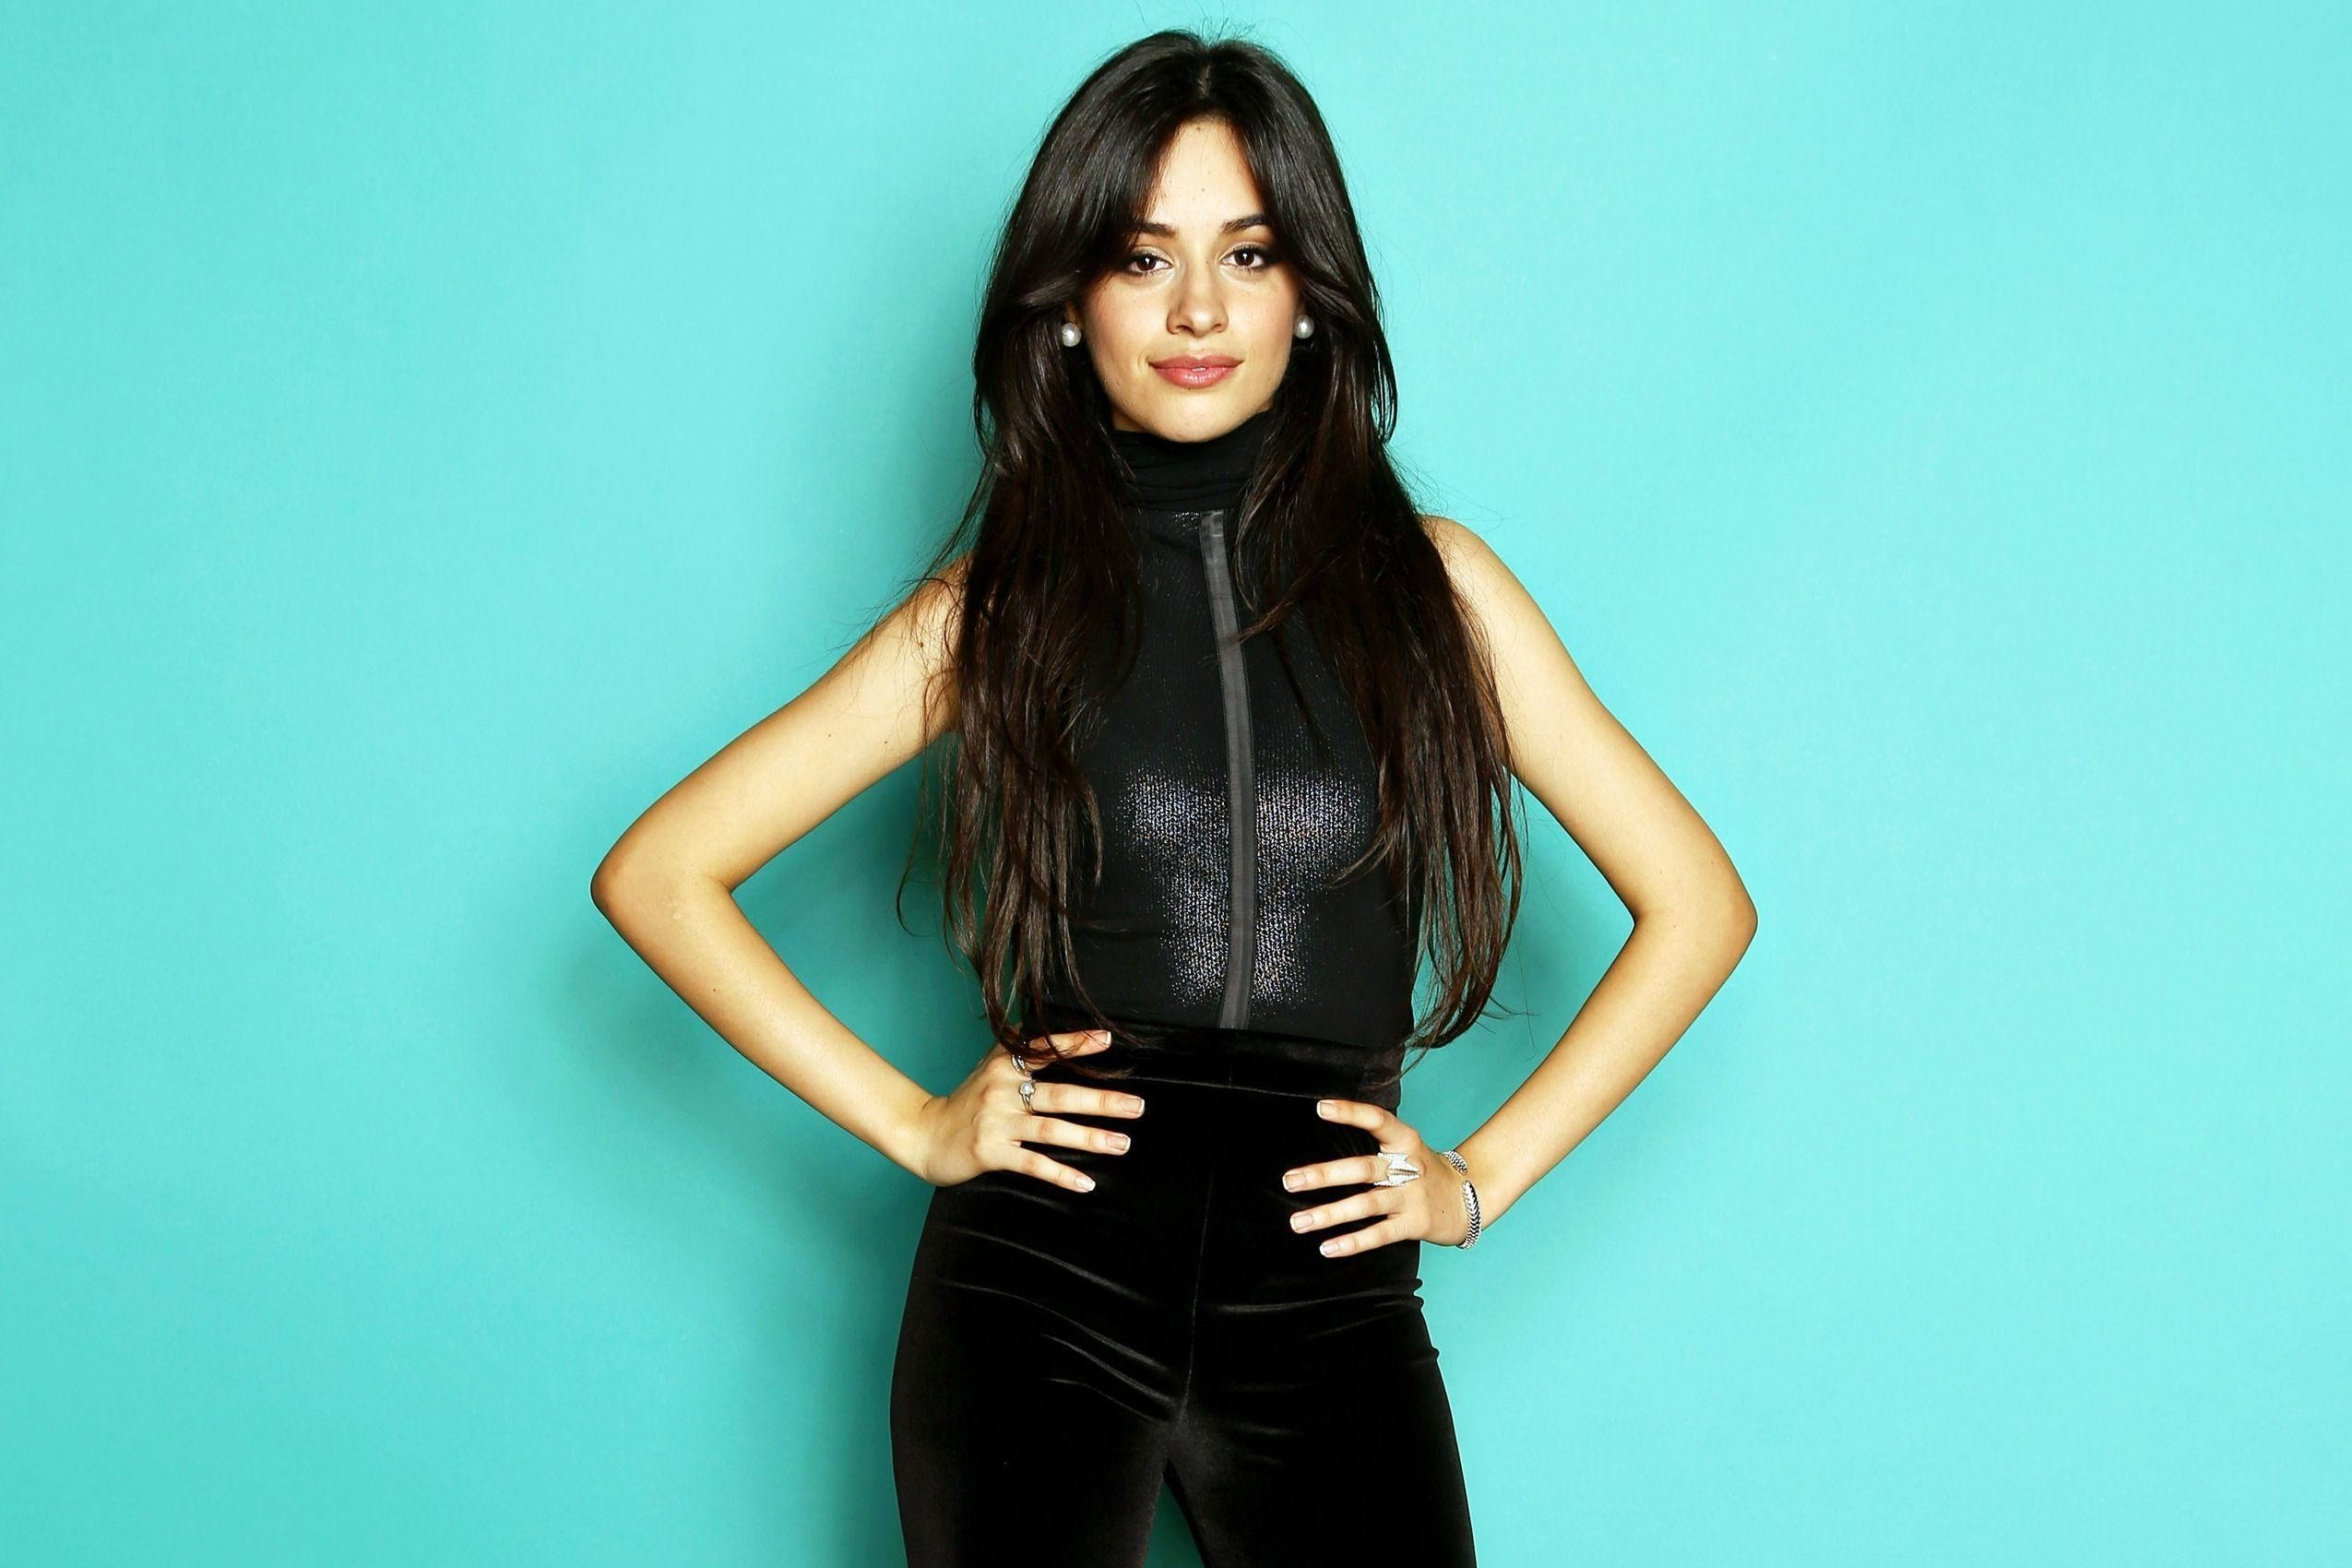 camila cabello wallpaper background 64577